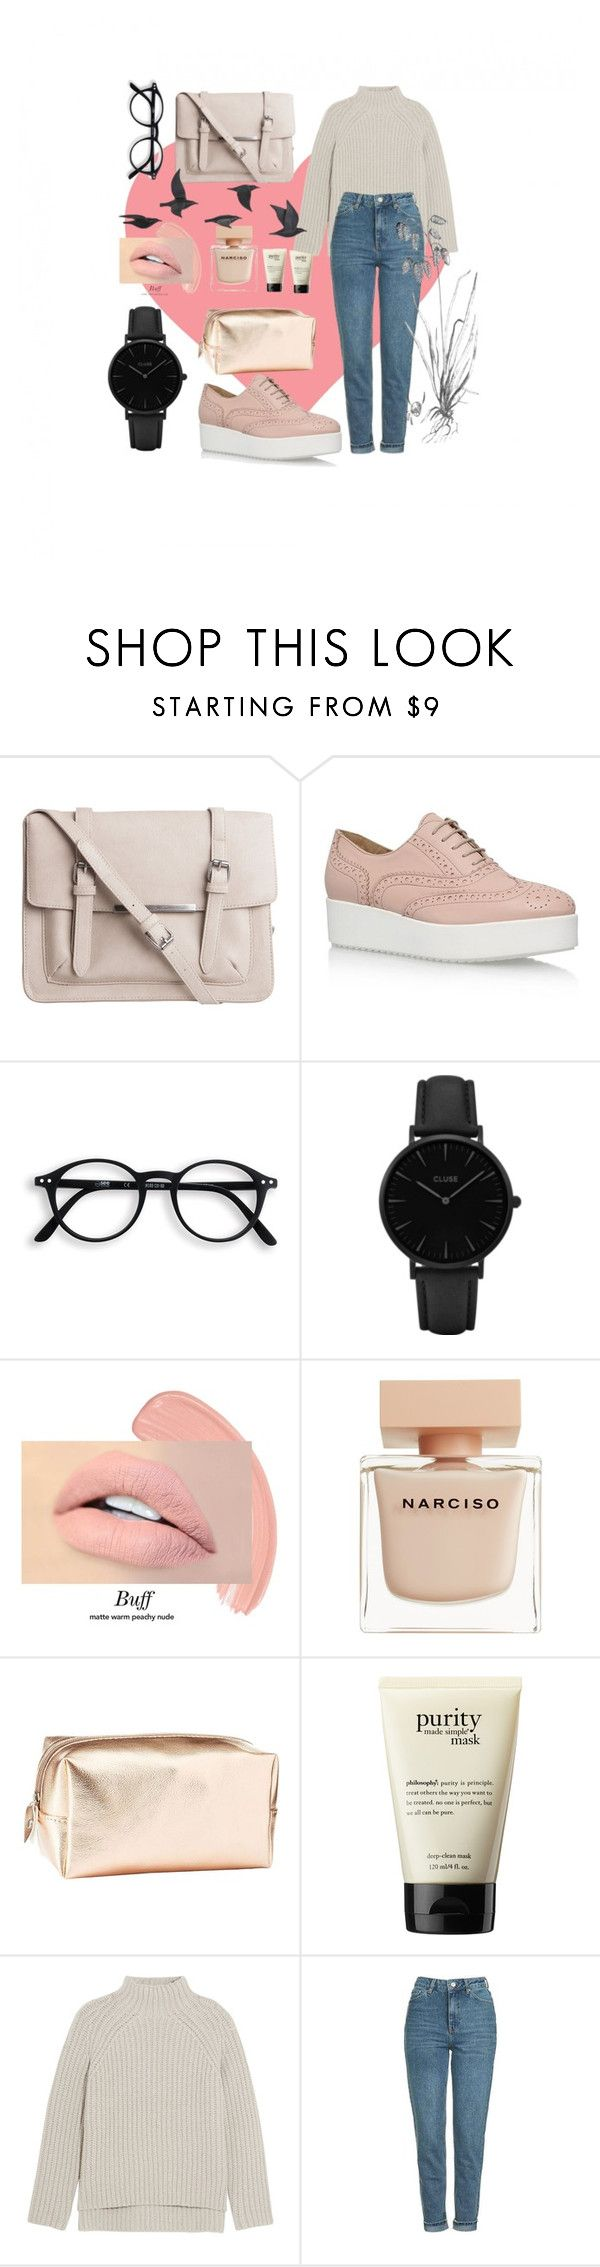 """Valentine day look"" by veronikaokhrin ❤ liked on Polyvore featuring Pieces, Carvela Kurt Geiger, CLUSE, Narciso Rodriguez, Charlotte Russe, philosophy, Theory, Topshop and Jayson Home"